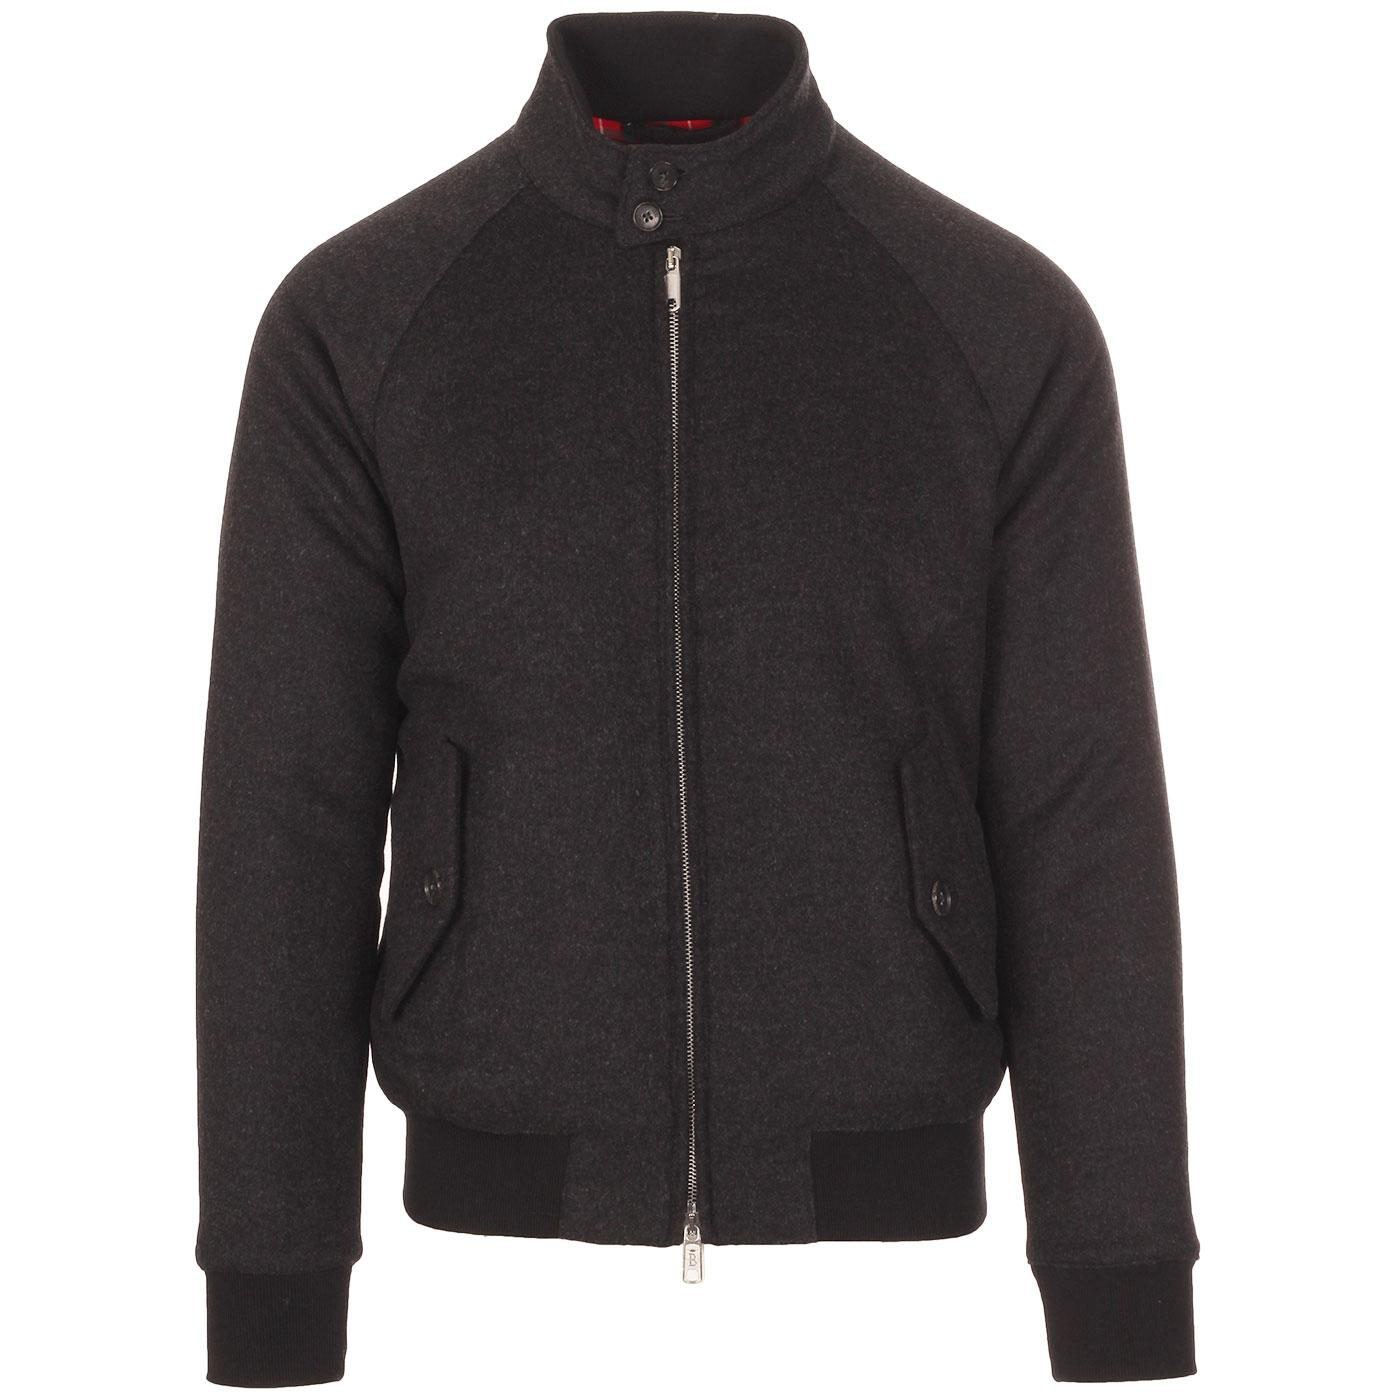 BARACUTA G9 Melton Mod Harrington Jacket CHARCOAL